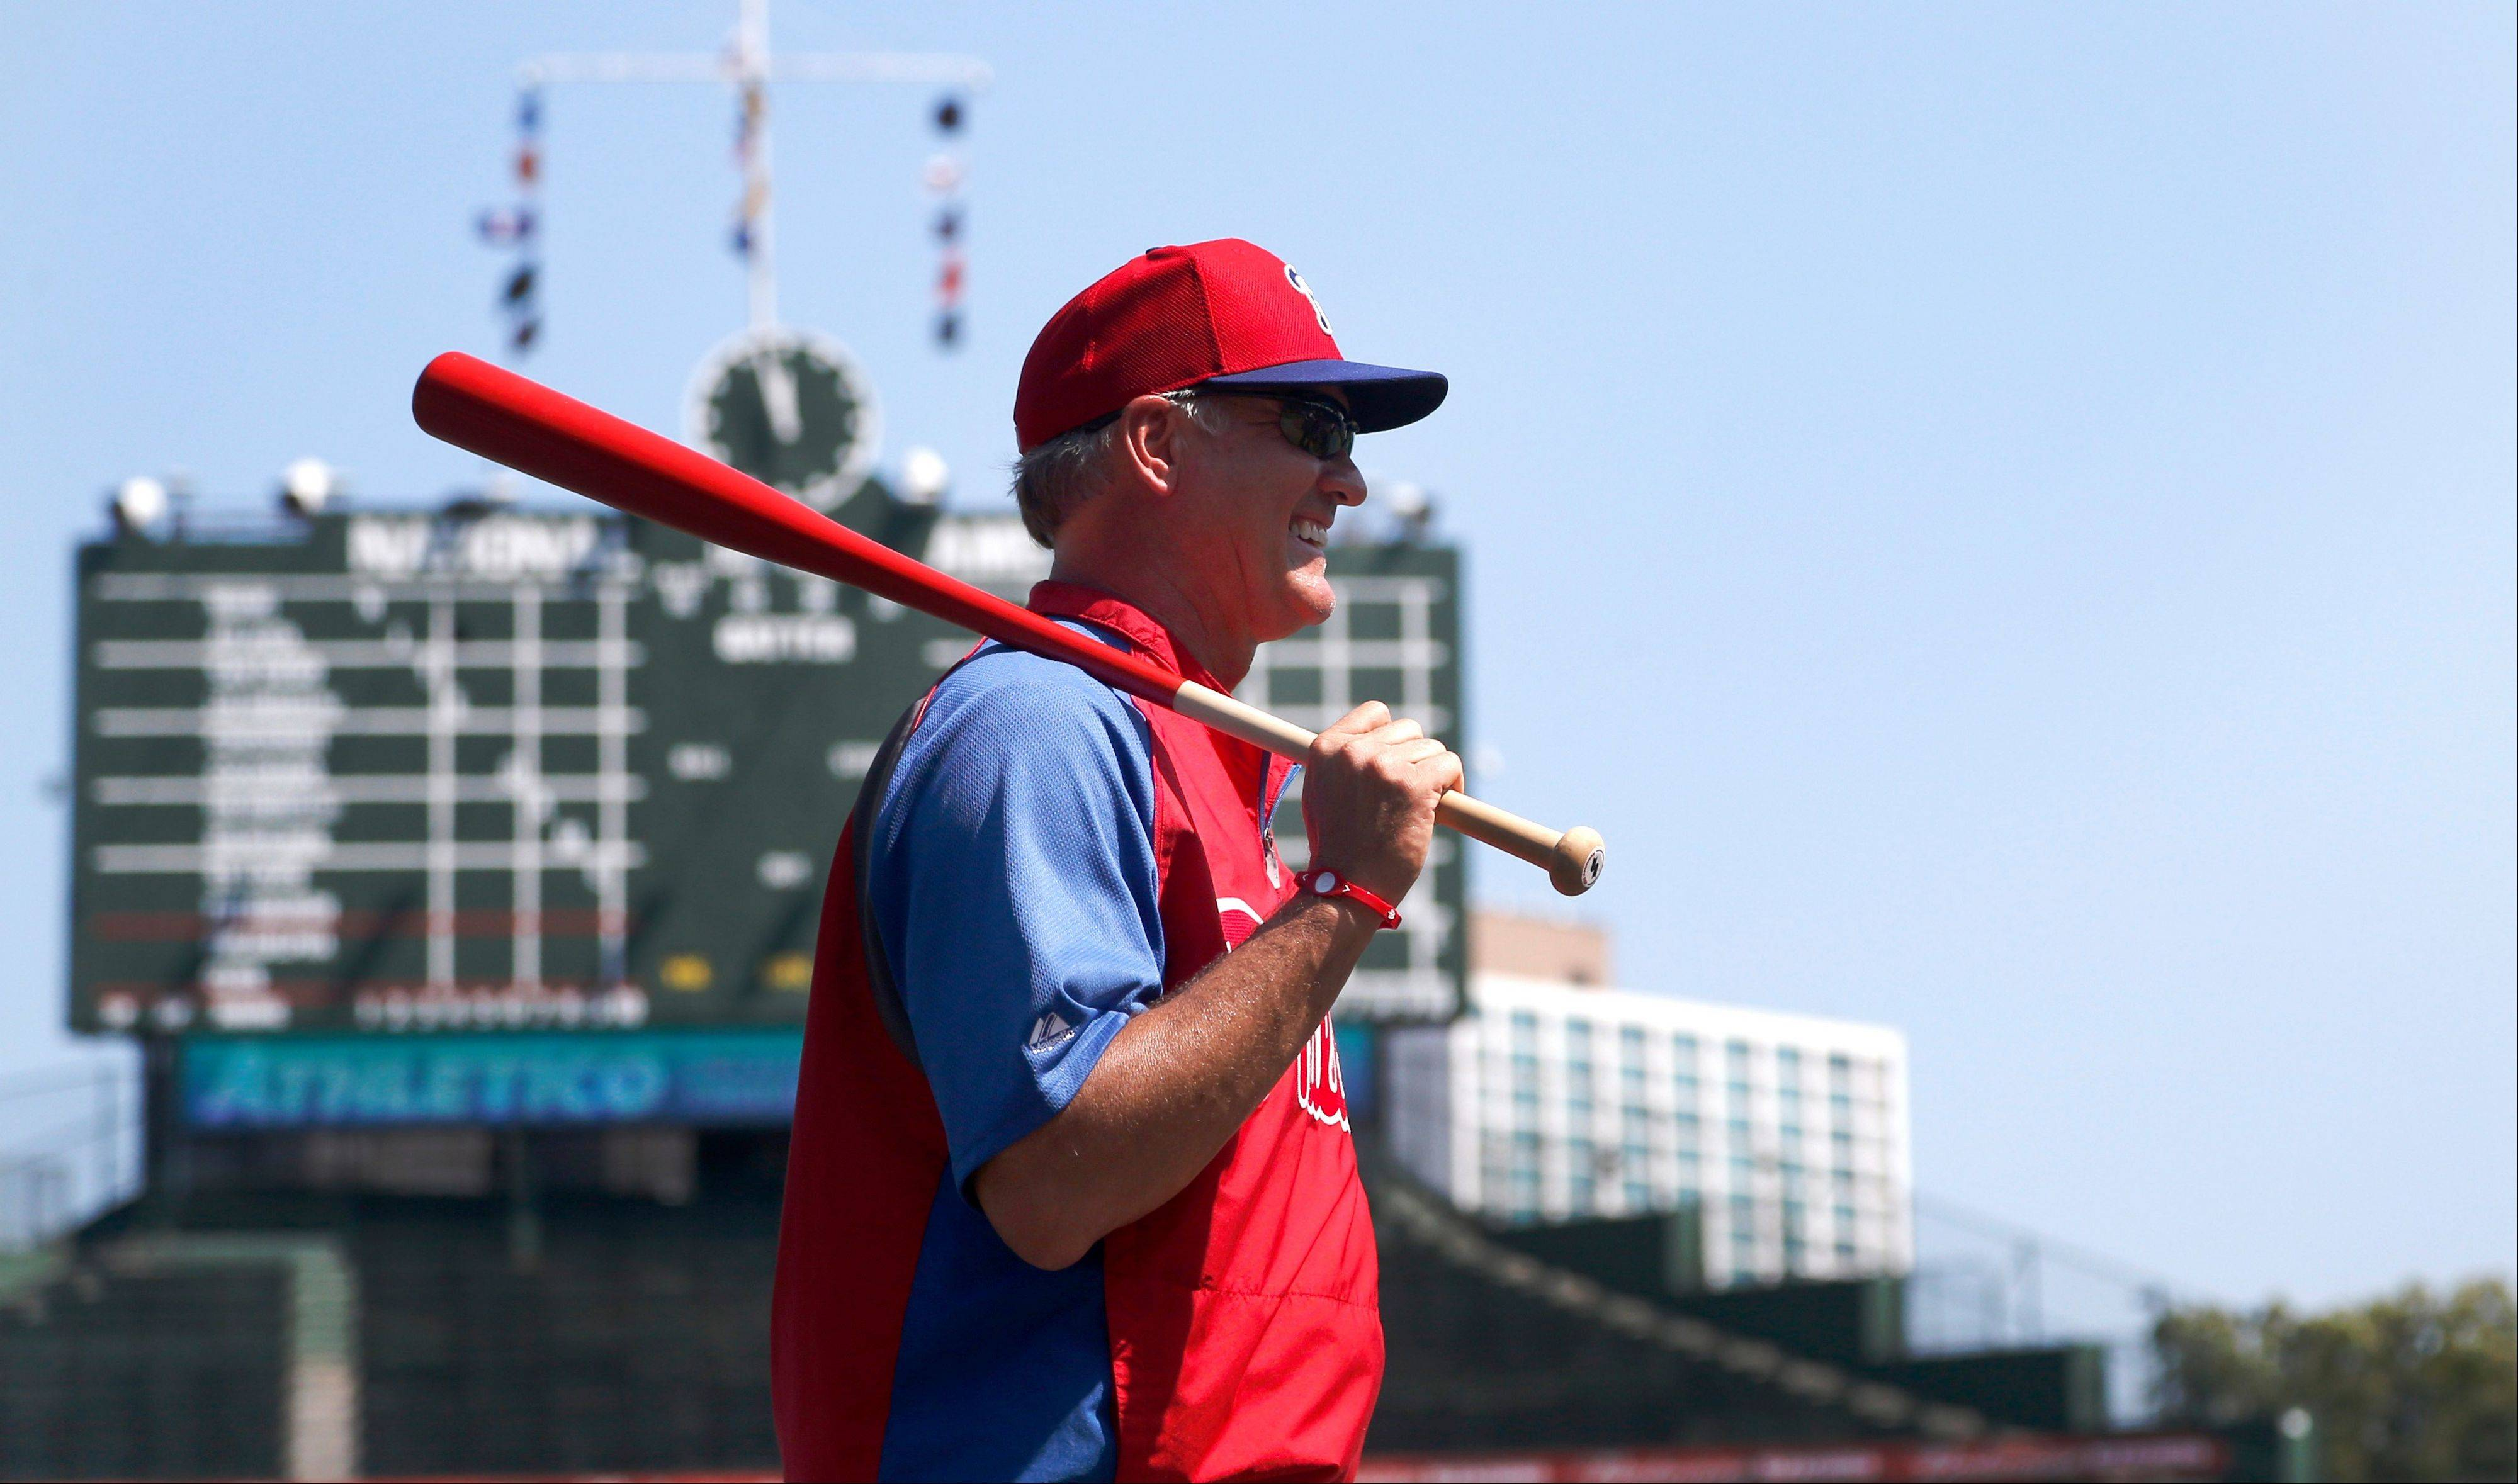 Phillies interim manager Ryne Sandberg looks out over field as he conducts infield practice before Friday's game at Wrigley Field.S